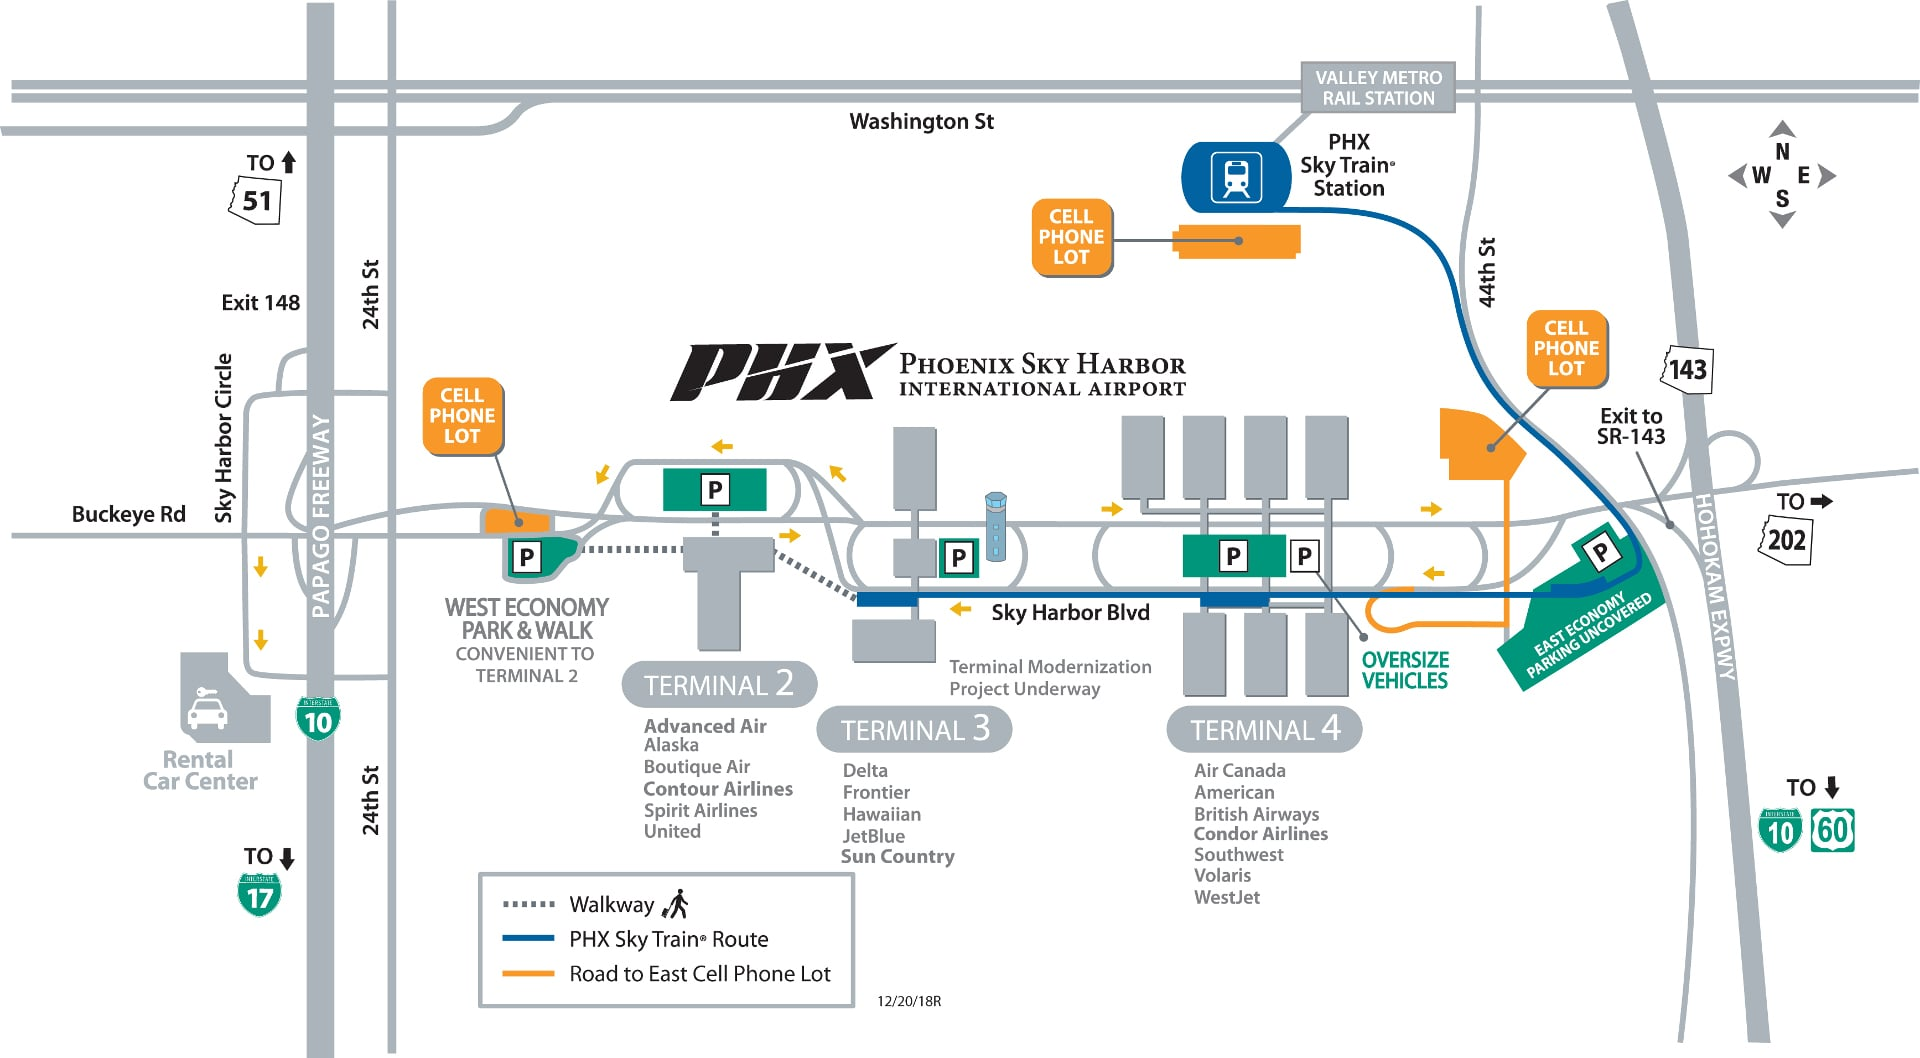 sky harbor map terminal 4 Phoenix Sky Harbor International Airport Phx Terminal Guide sky harbor map terminal 4